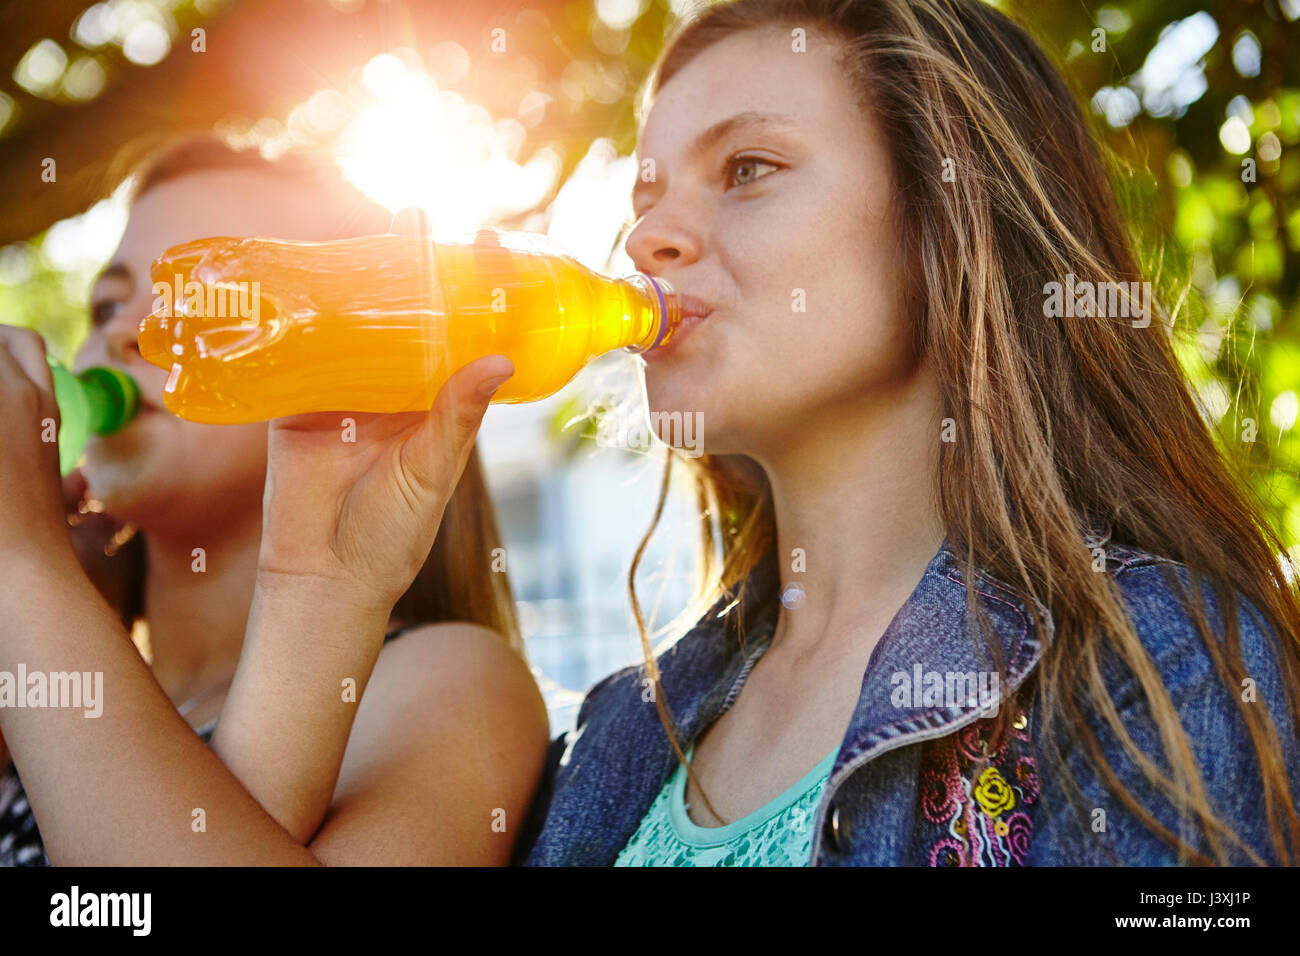 Two female friends sitting outdoors, drinking soft drinks Stock Photo